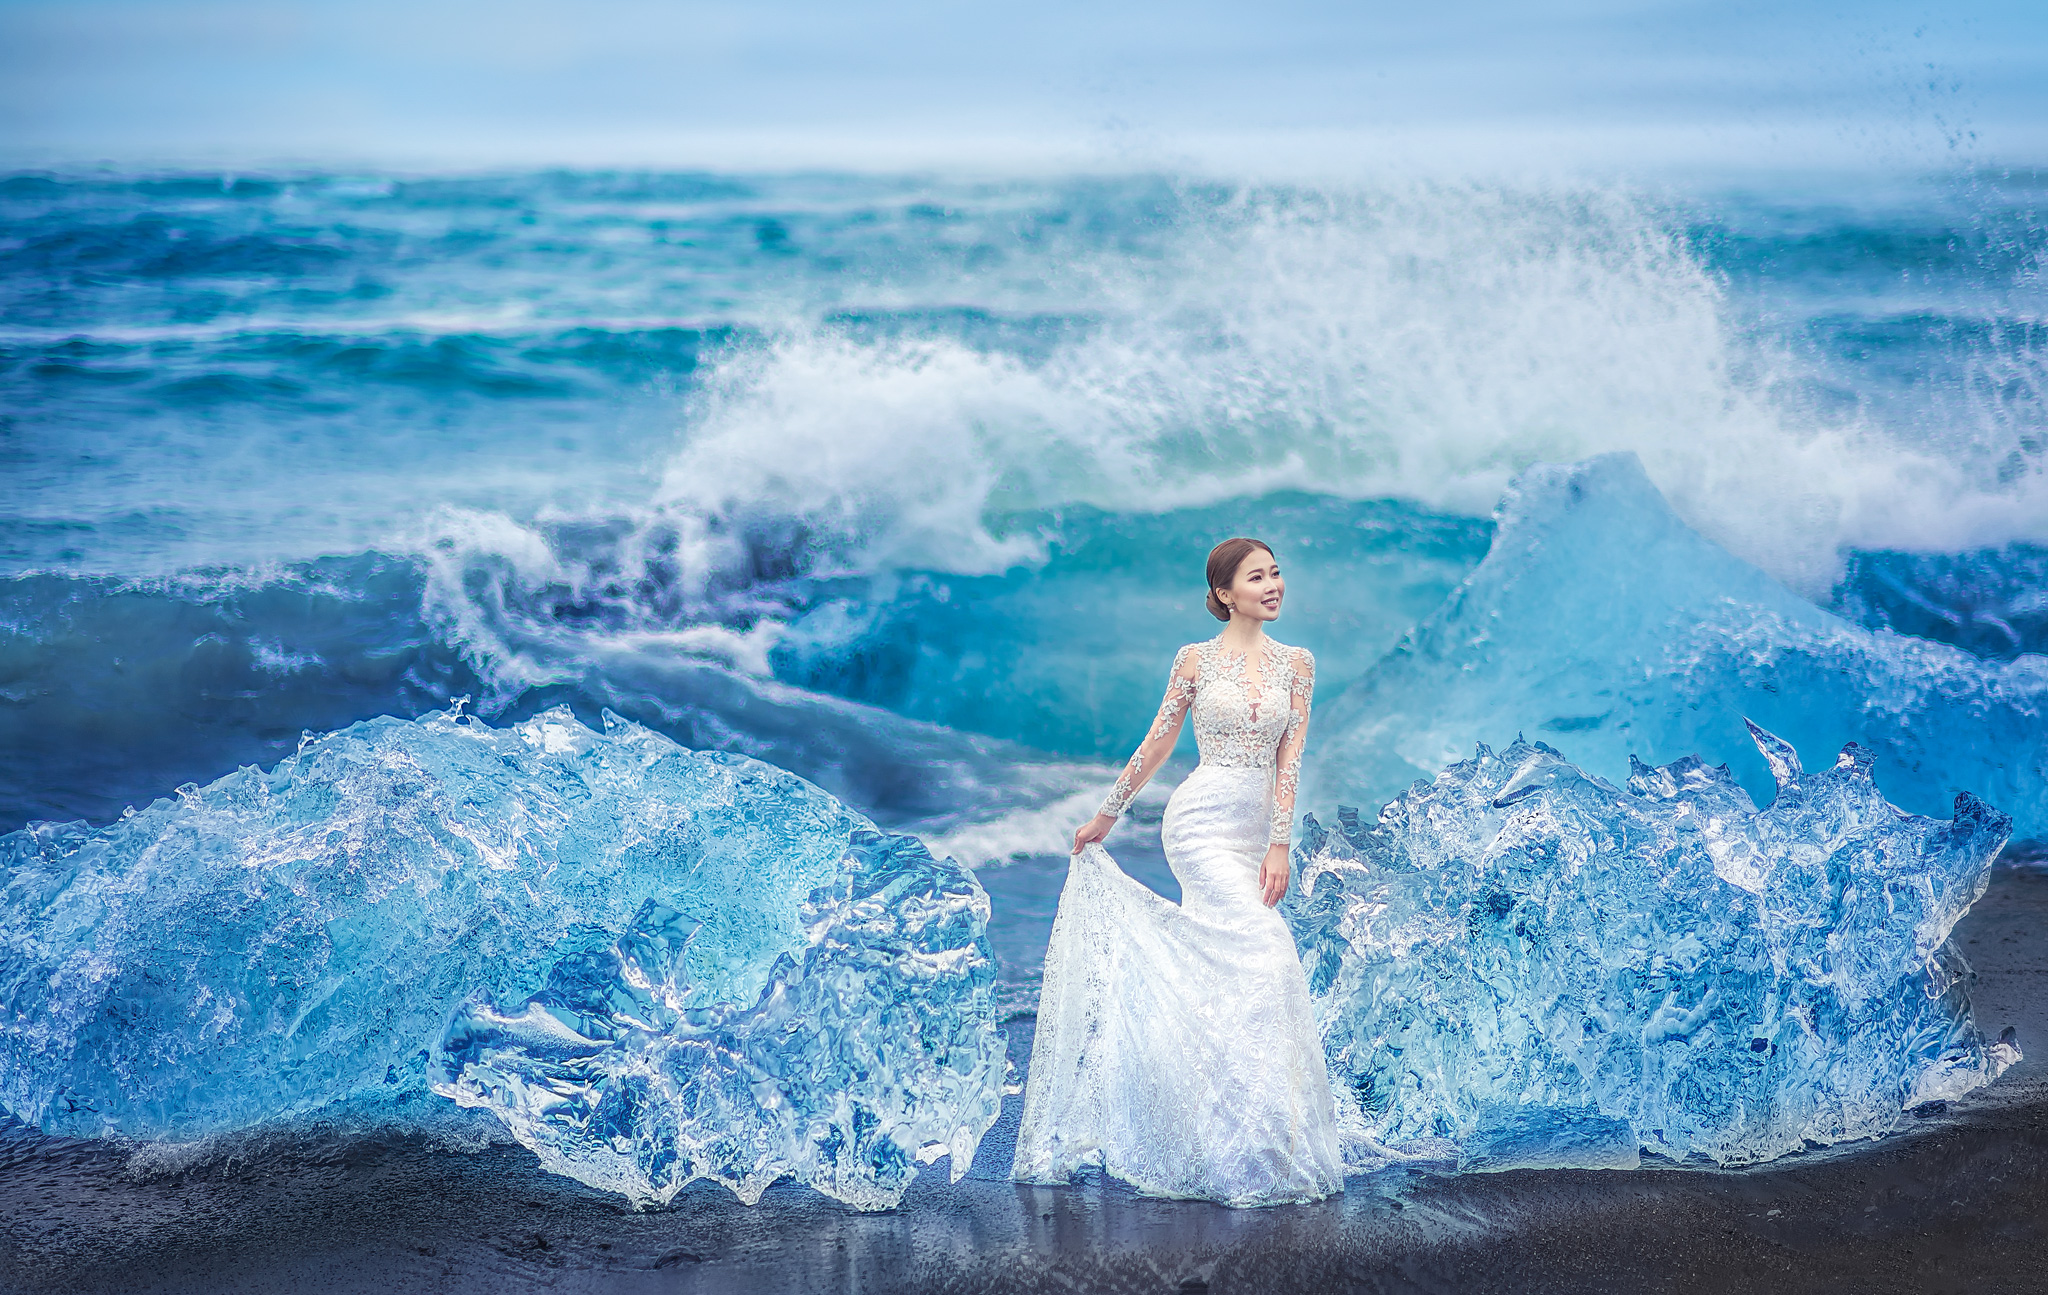 Bride in lace gown against crashing waves and ice - photo by Edwin Tan Photography